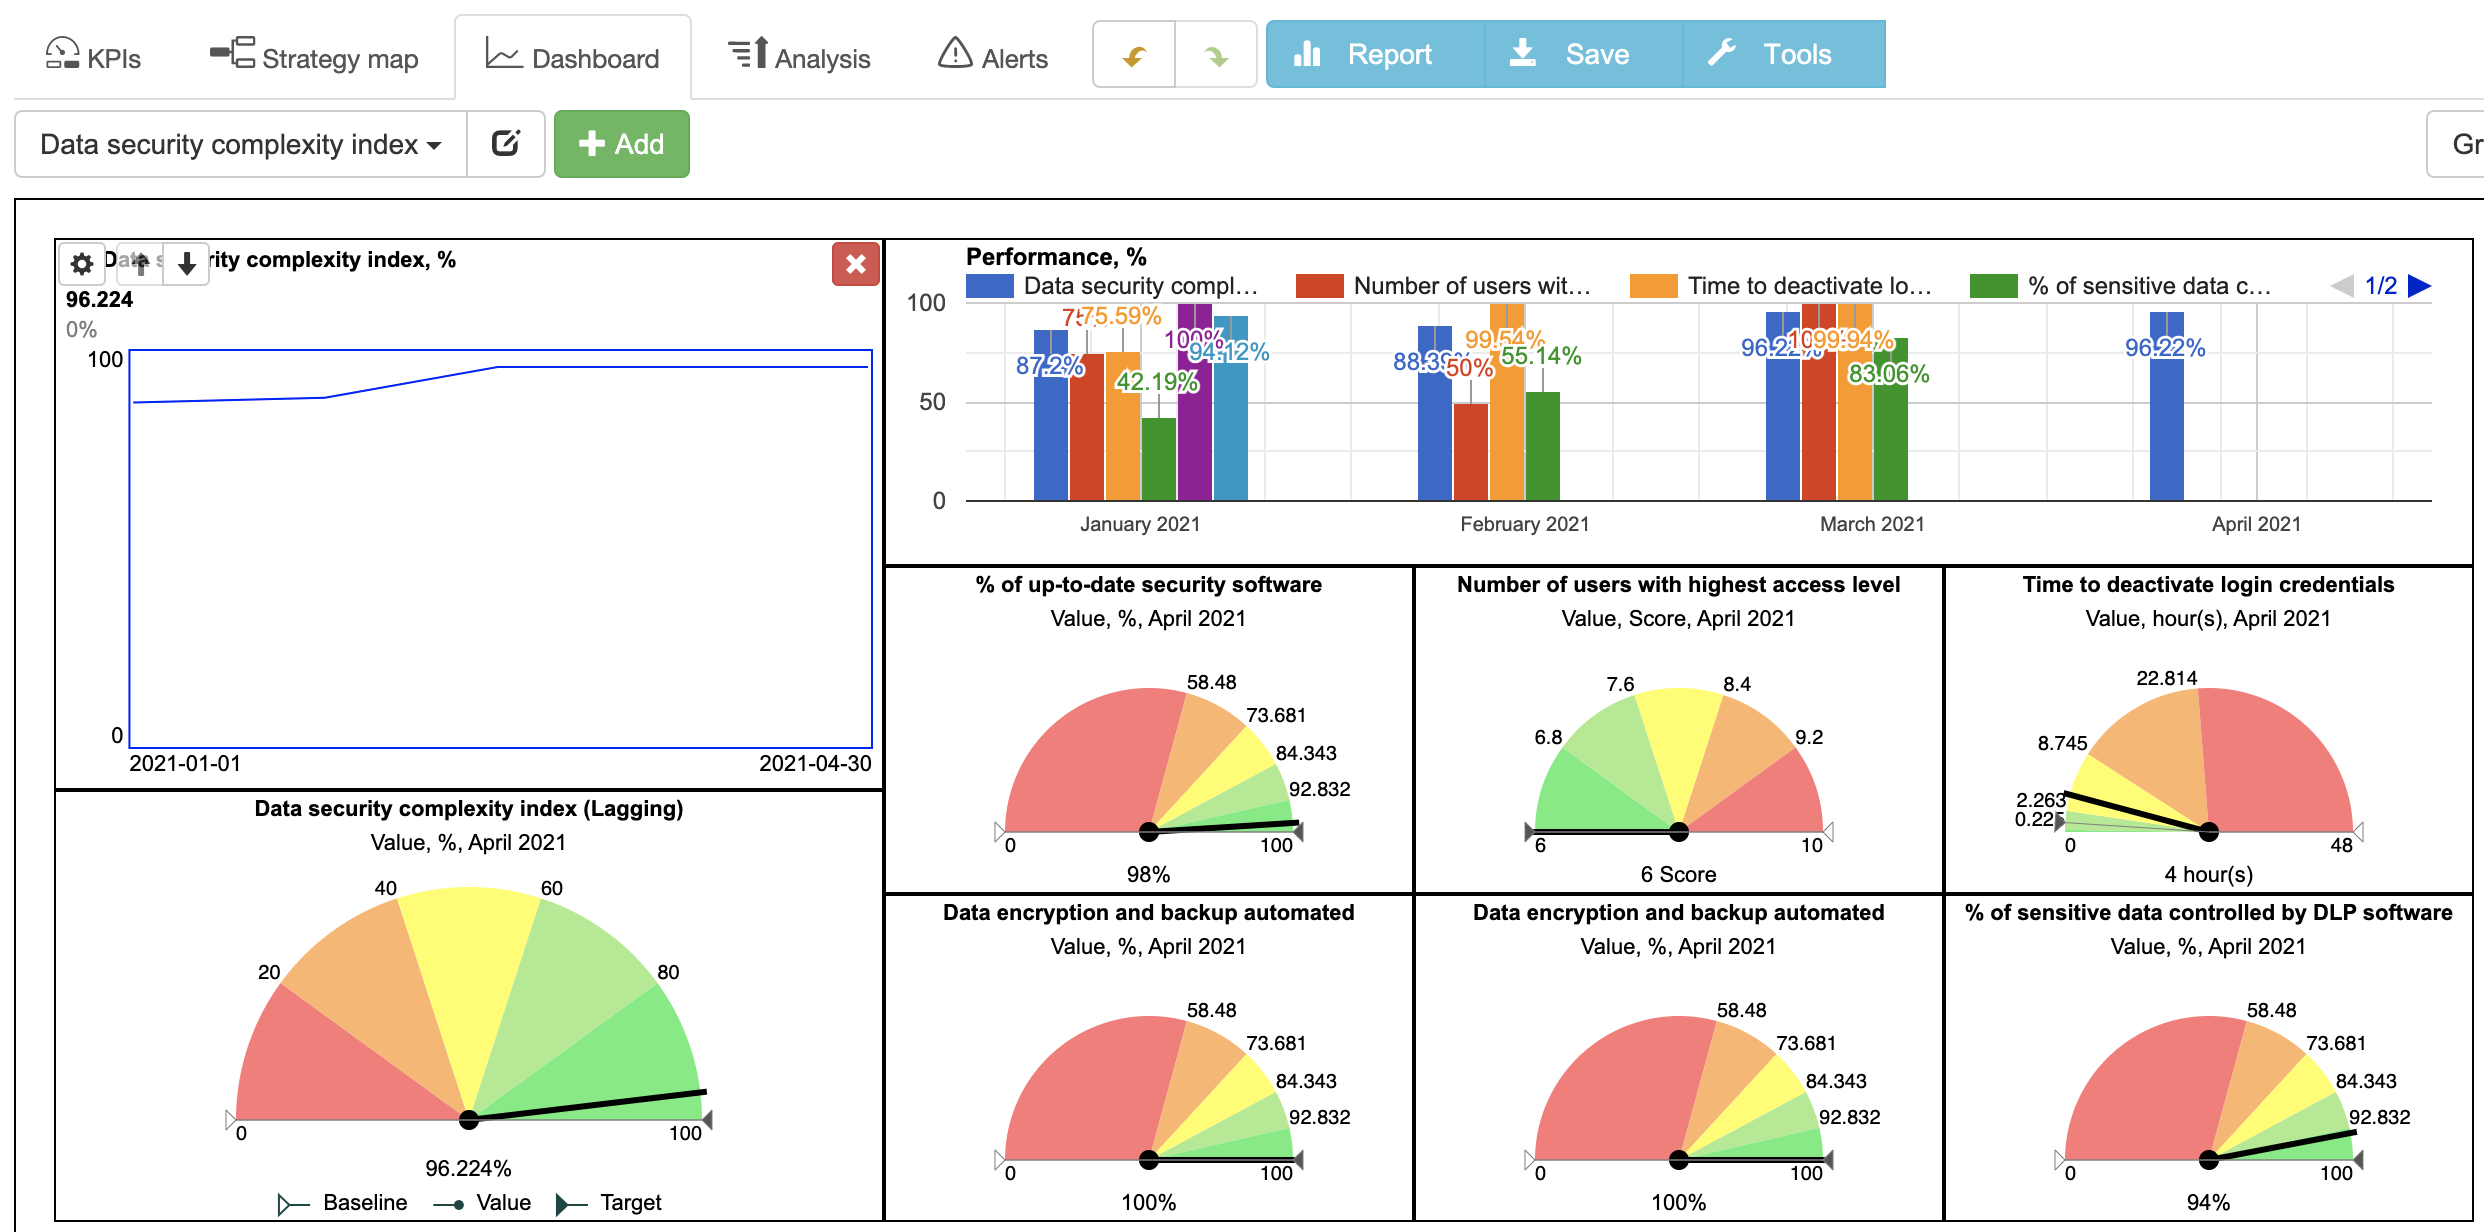 An example of the data security complexity index dashboard